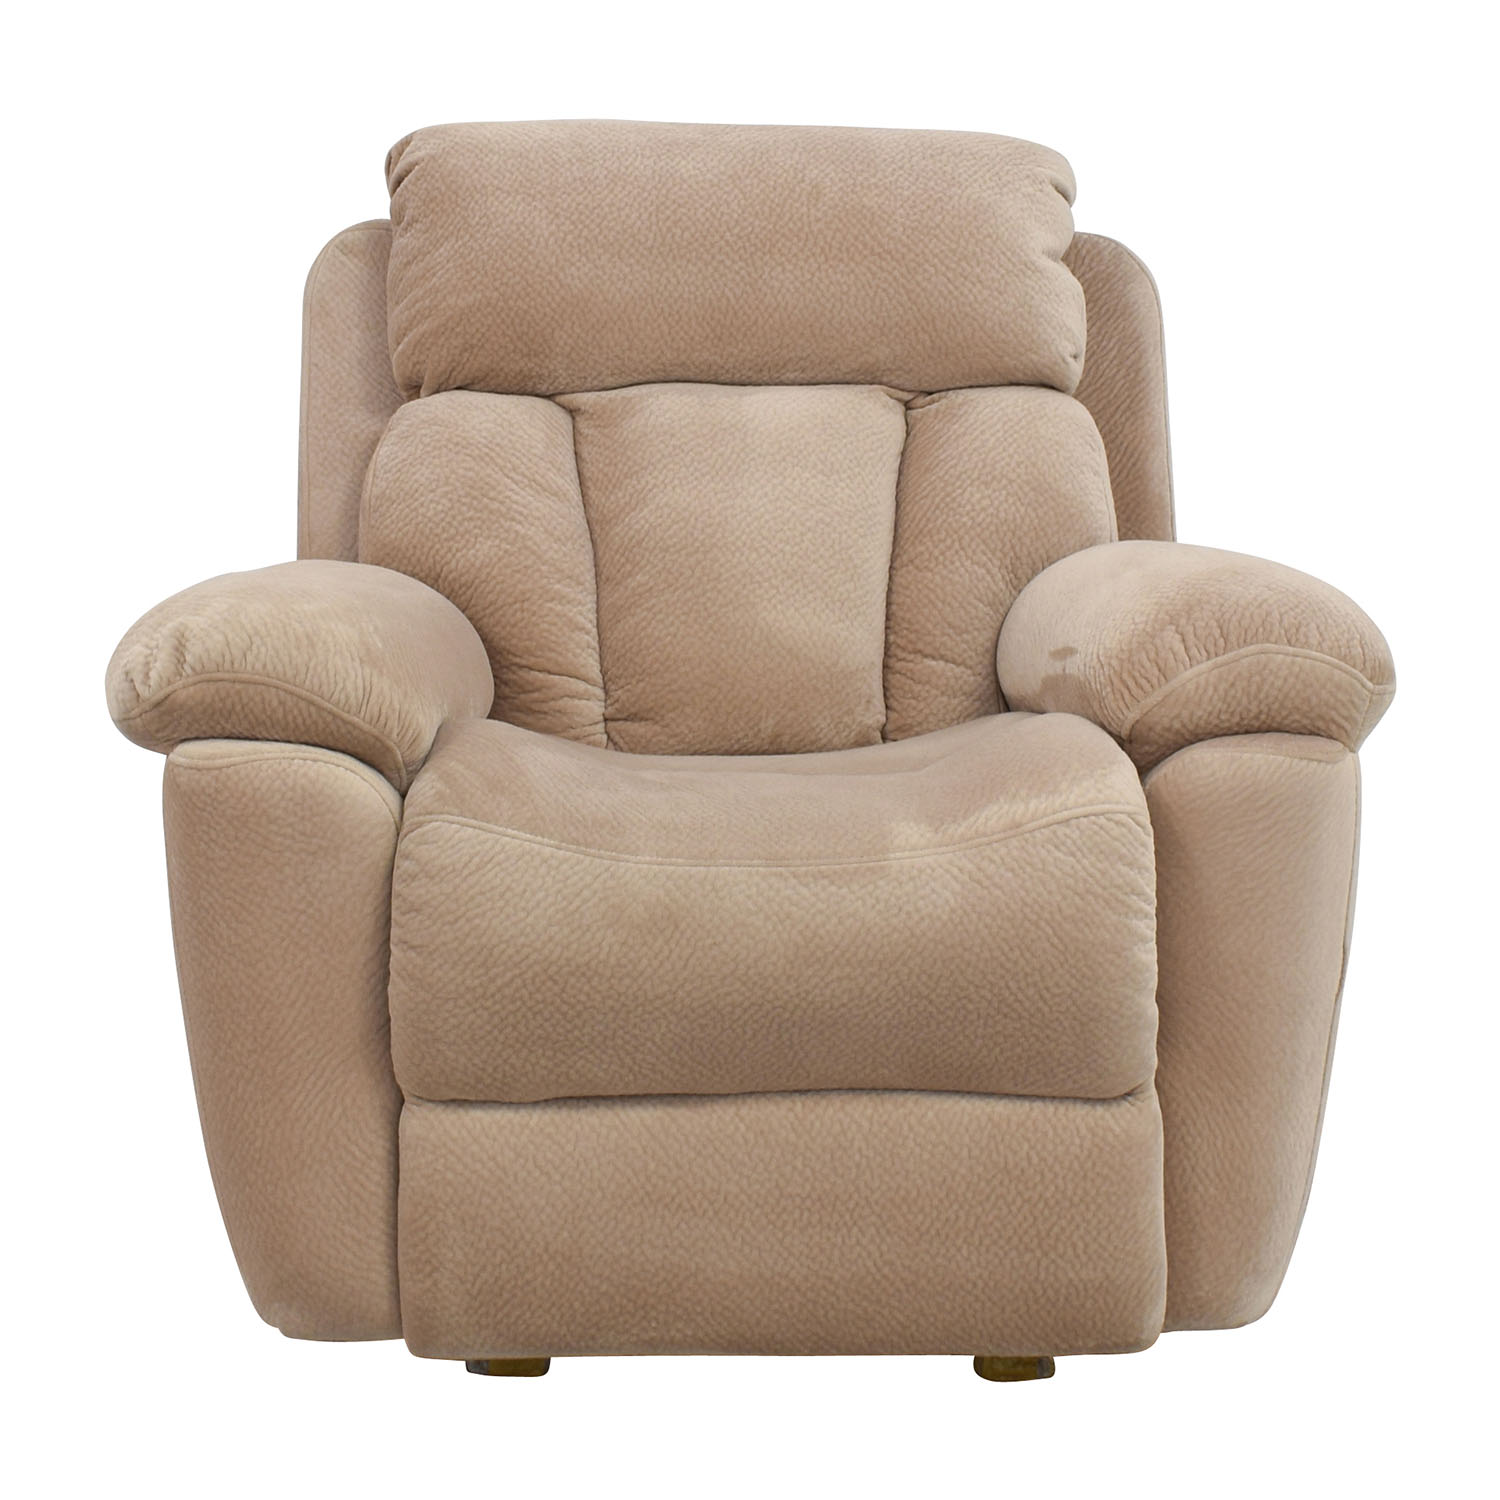 fashion furniture accent ottomans recliners products push back chairs franklin